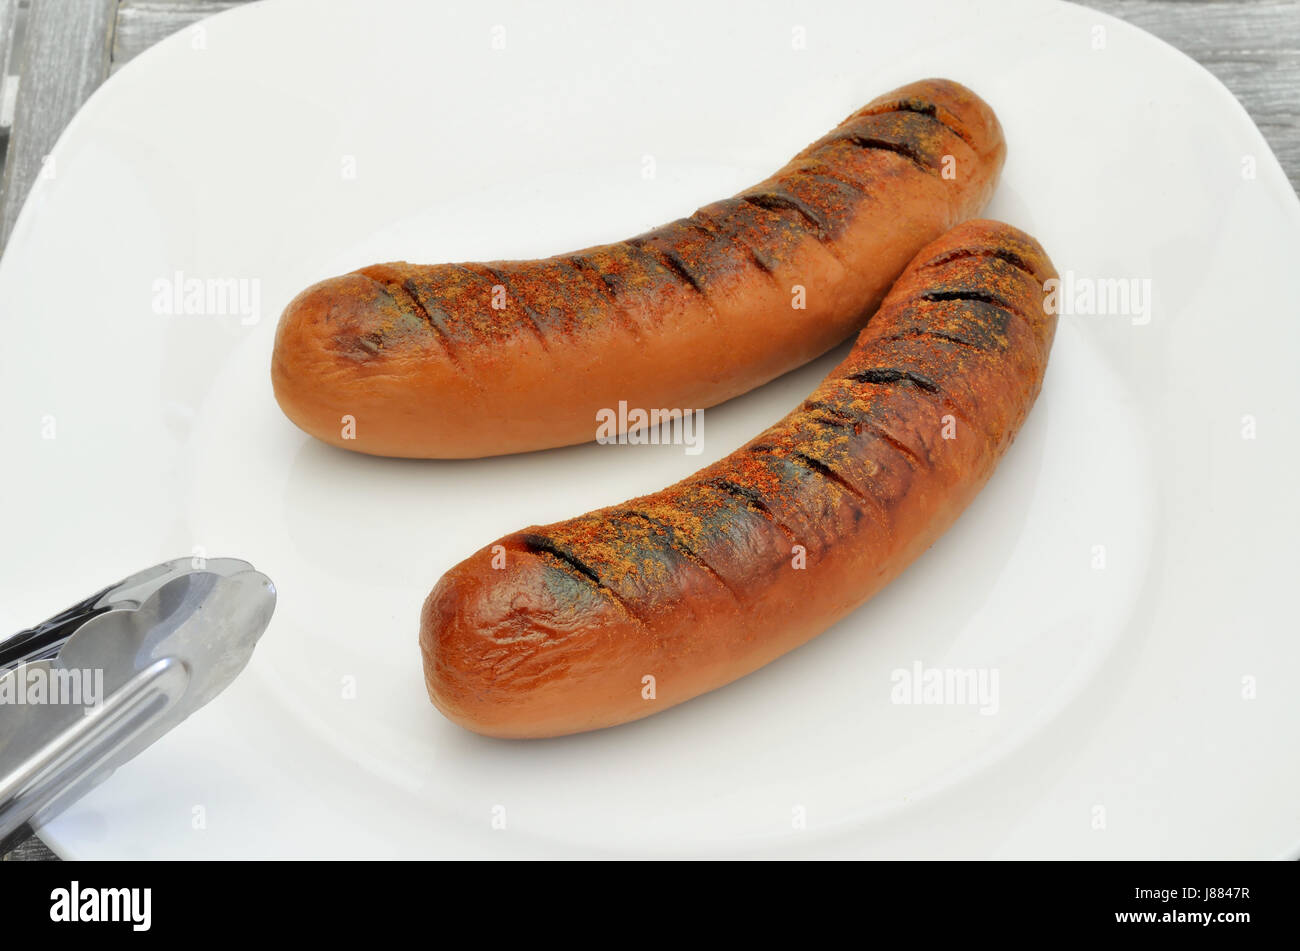 two grilled sausages on white plate, close up, macro, full frame Stock Photo